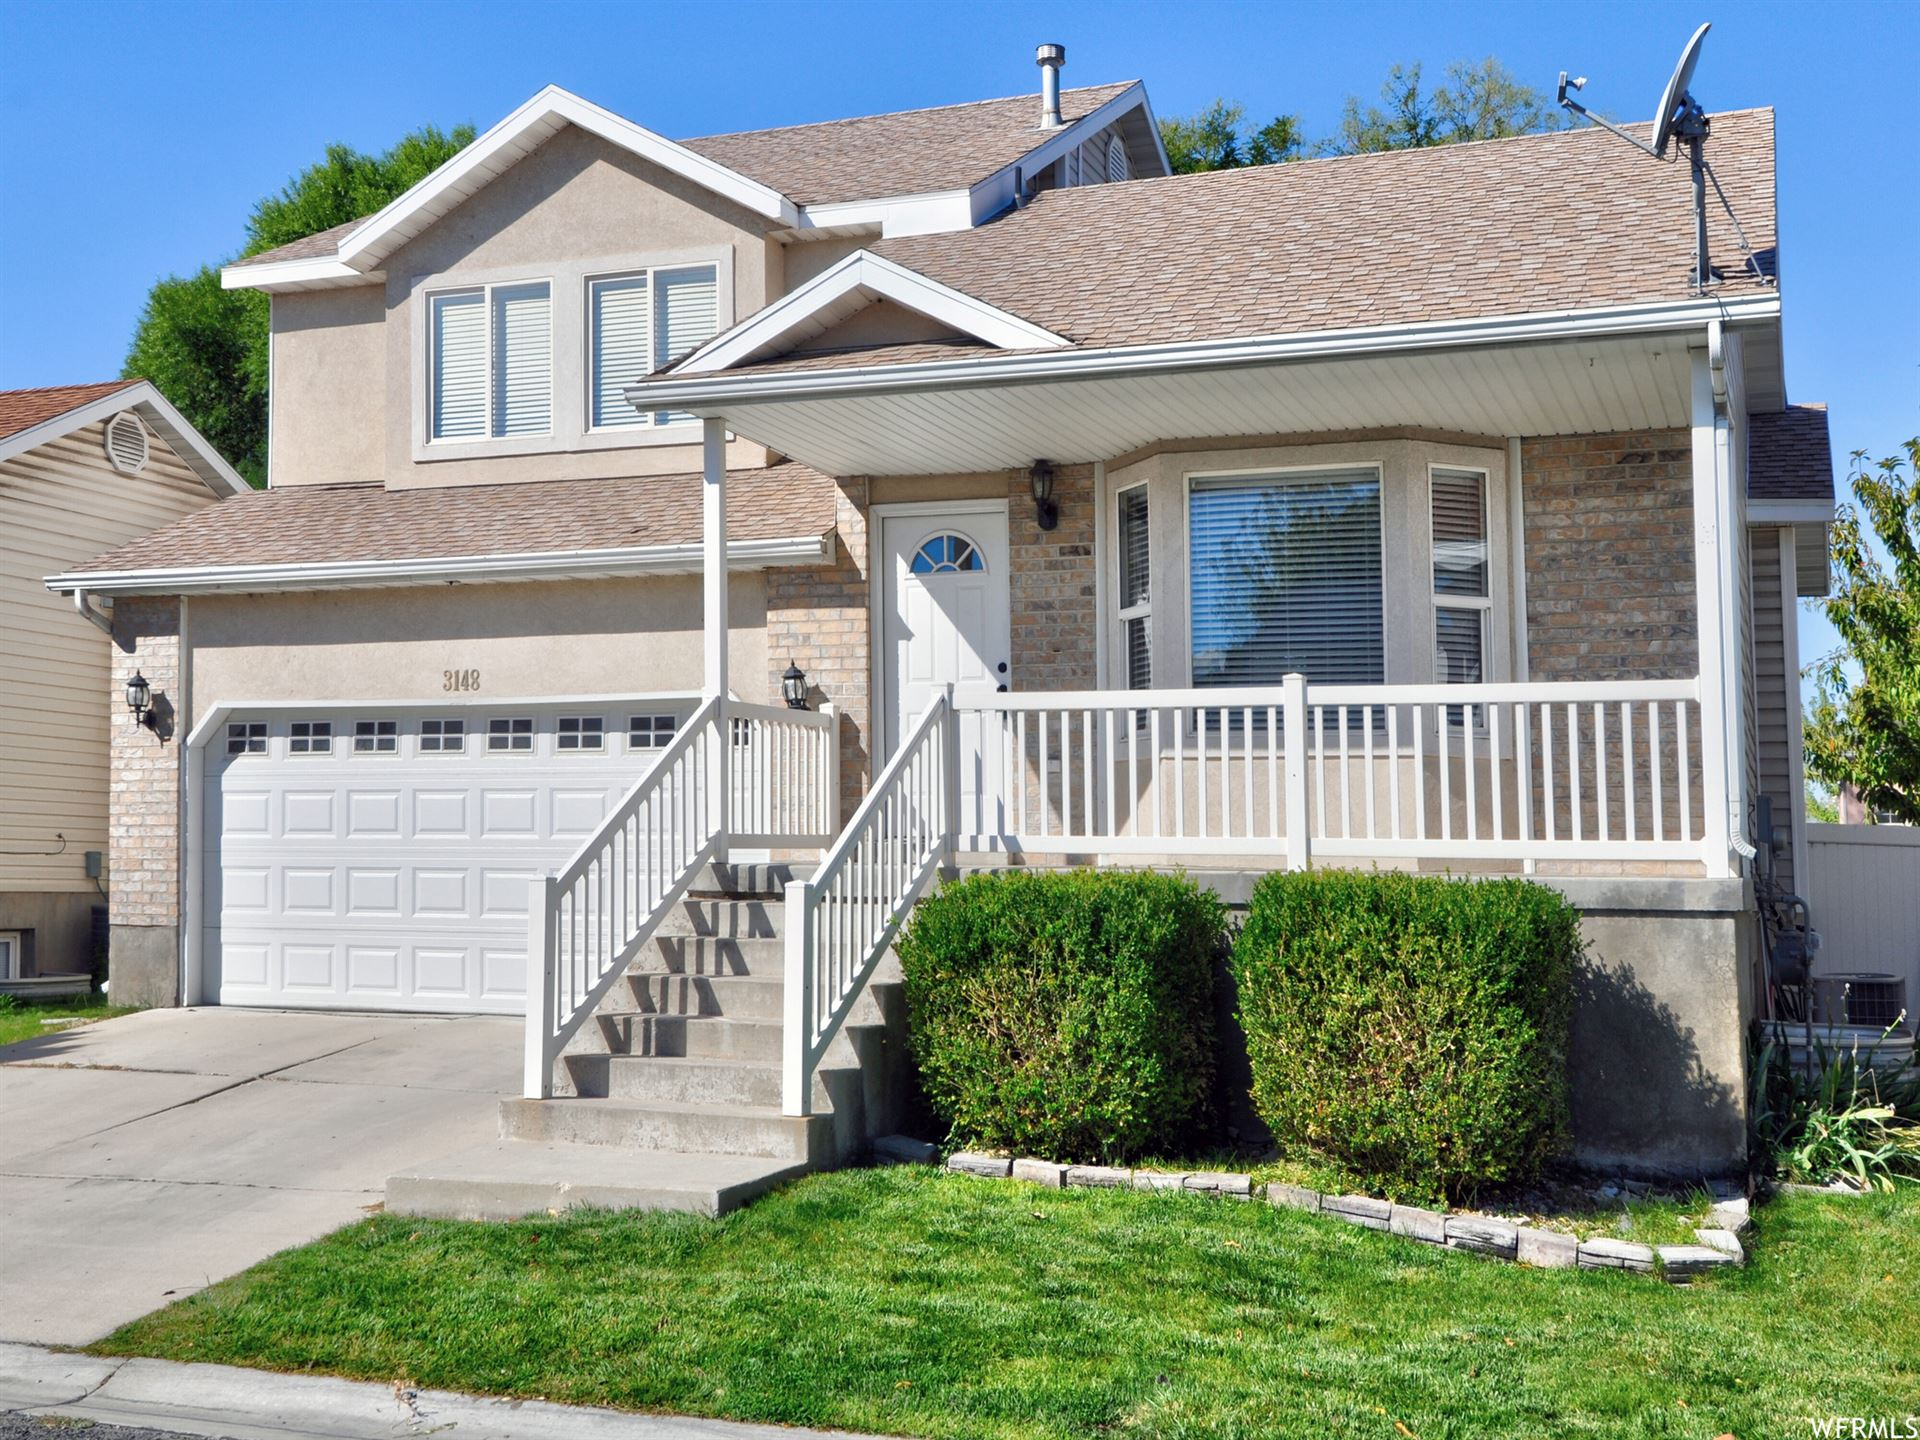 Photo of 3148 S IVY PARK DR, West Valley City, UT 84119 (MLS # 1770341)